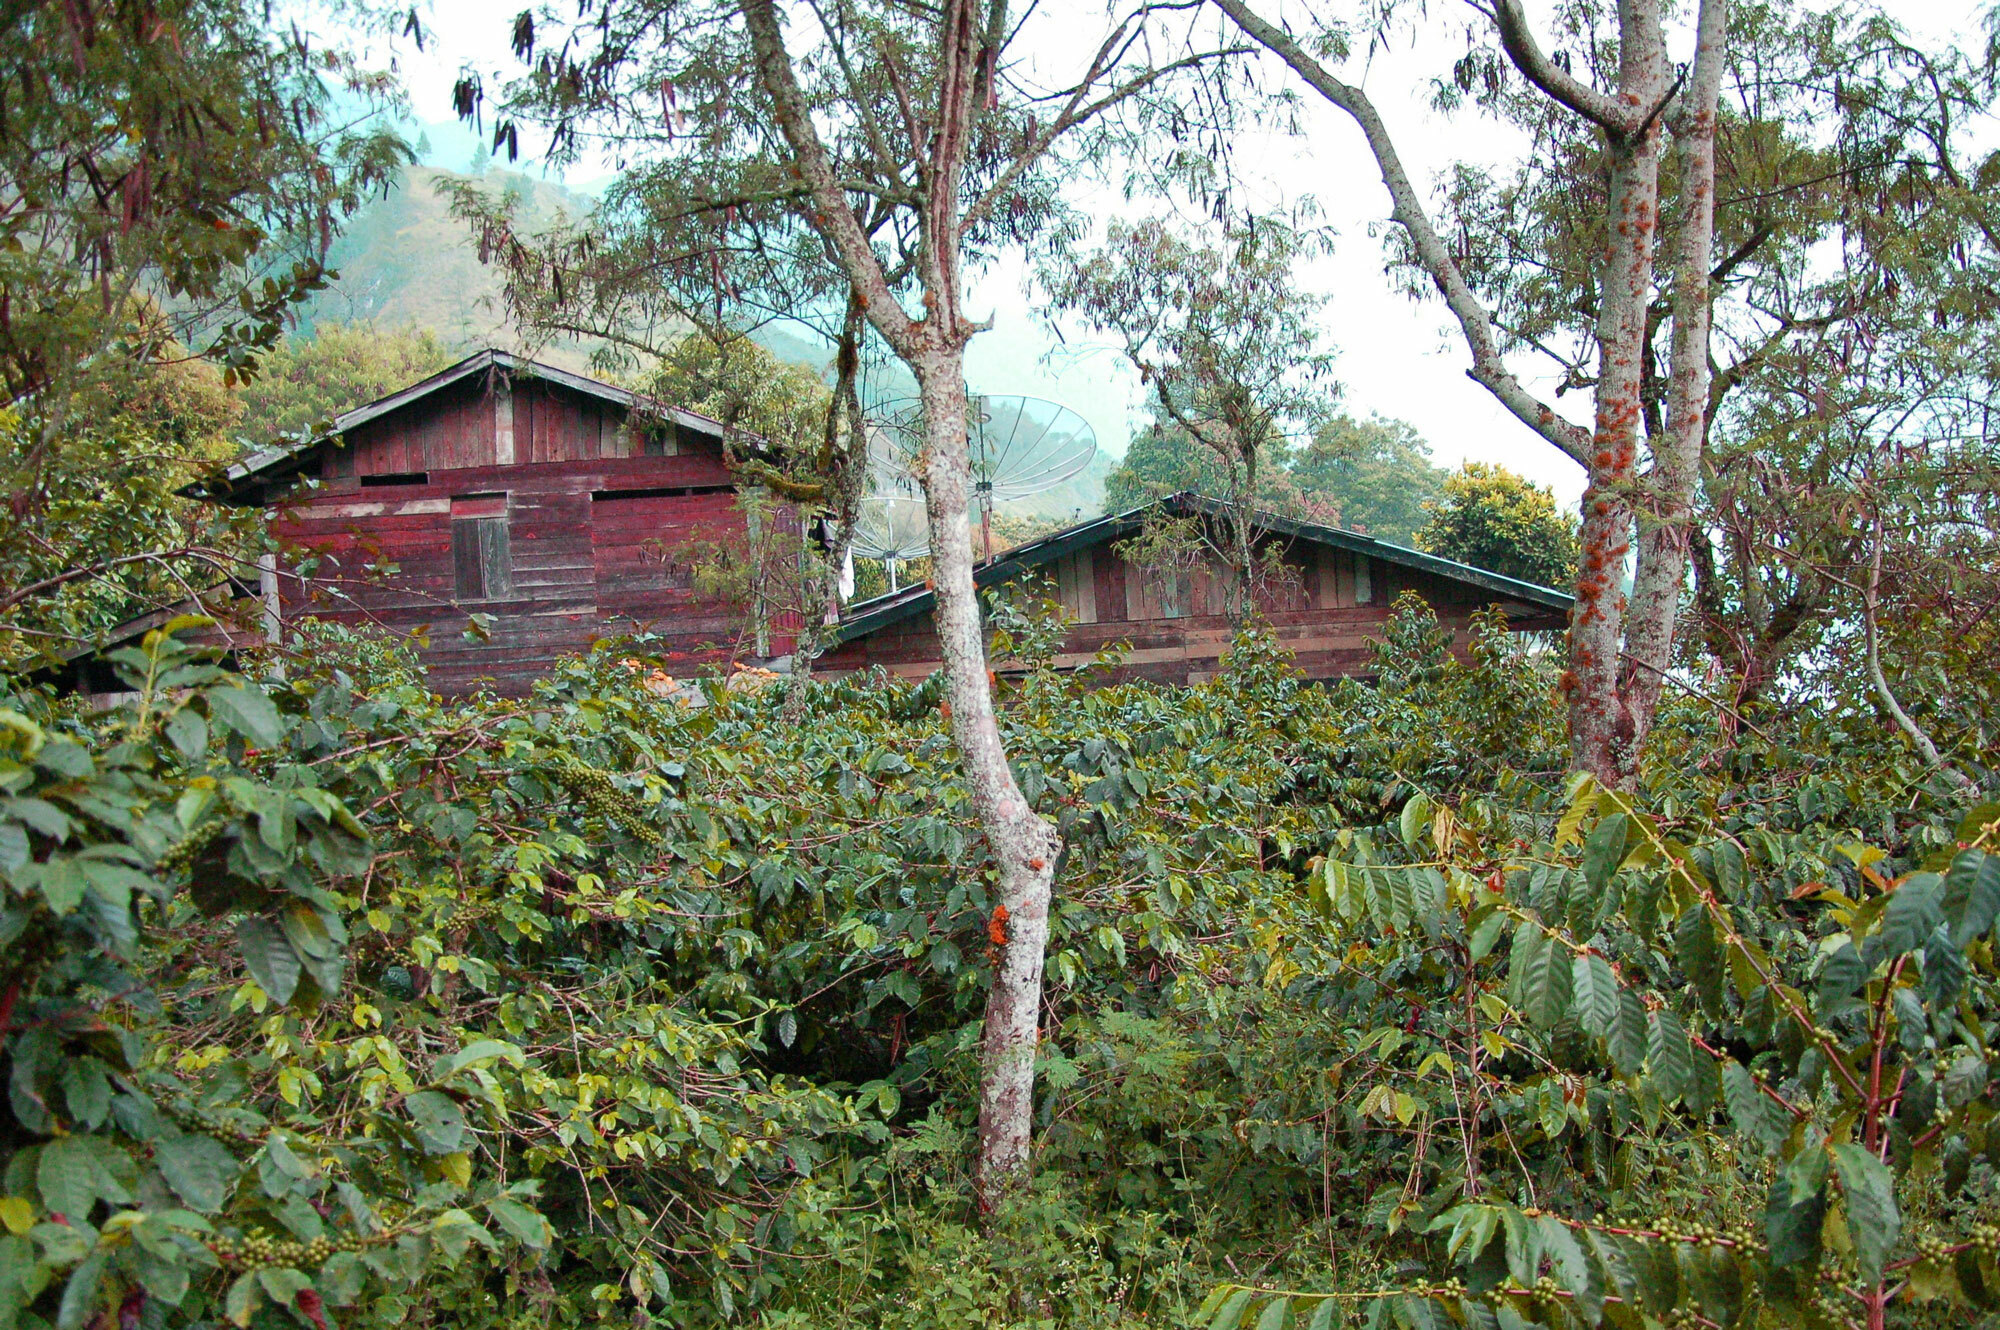 Lush coffee farm under shade trees in front of two red wood buildings